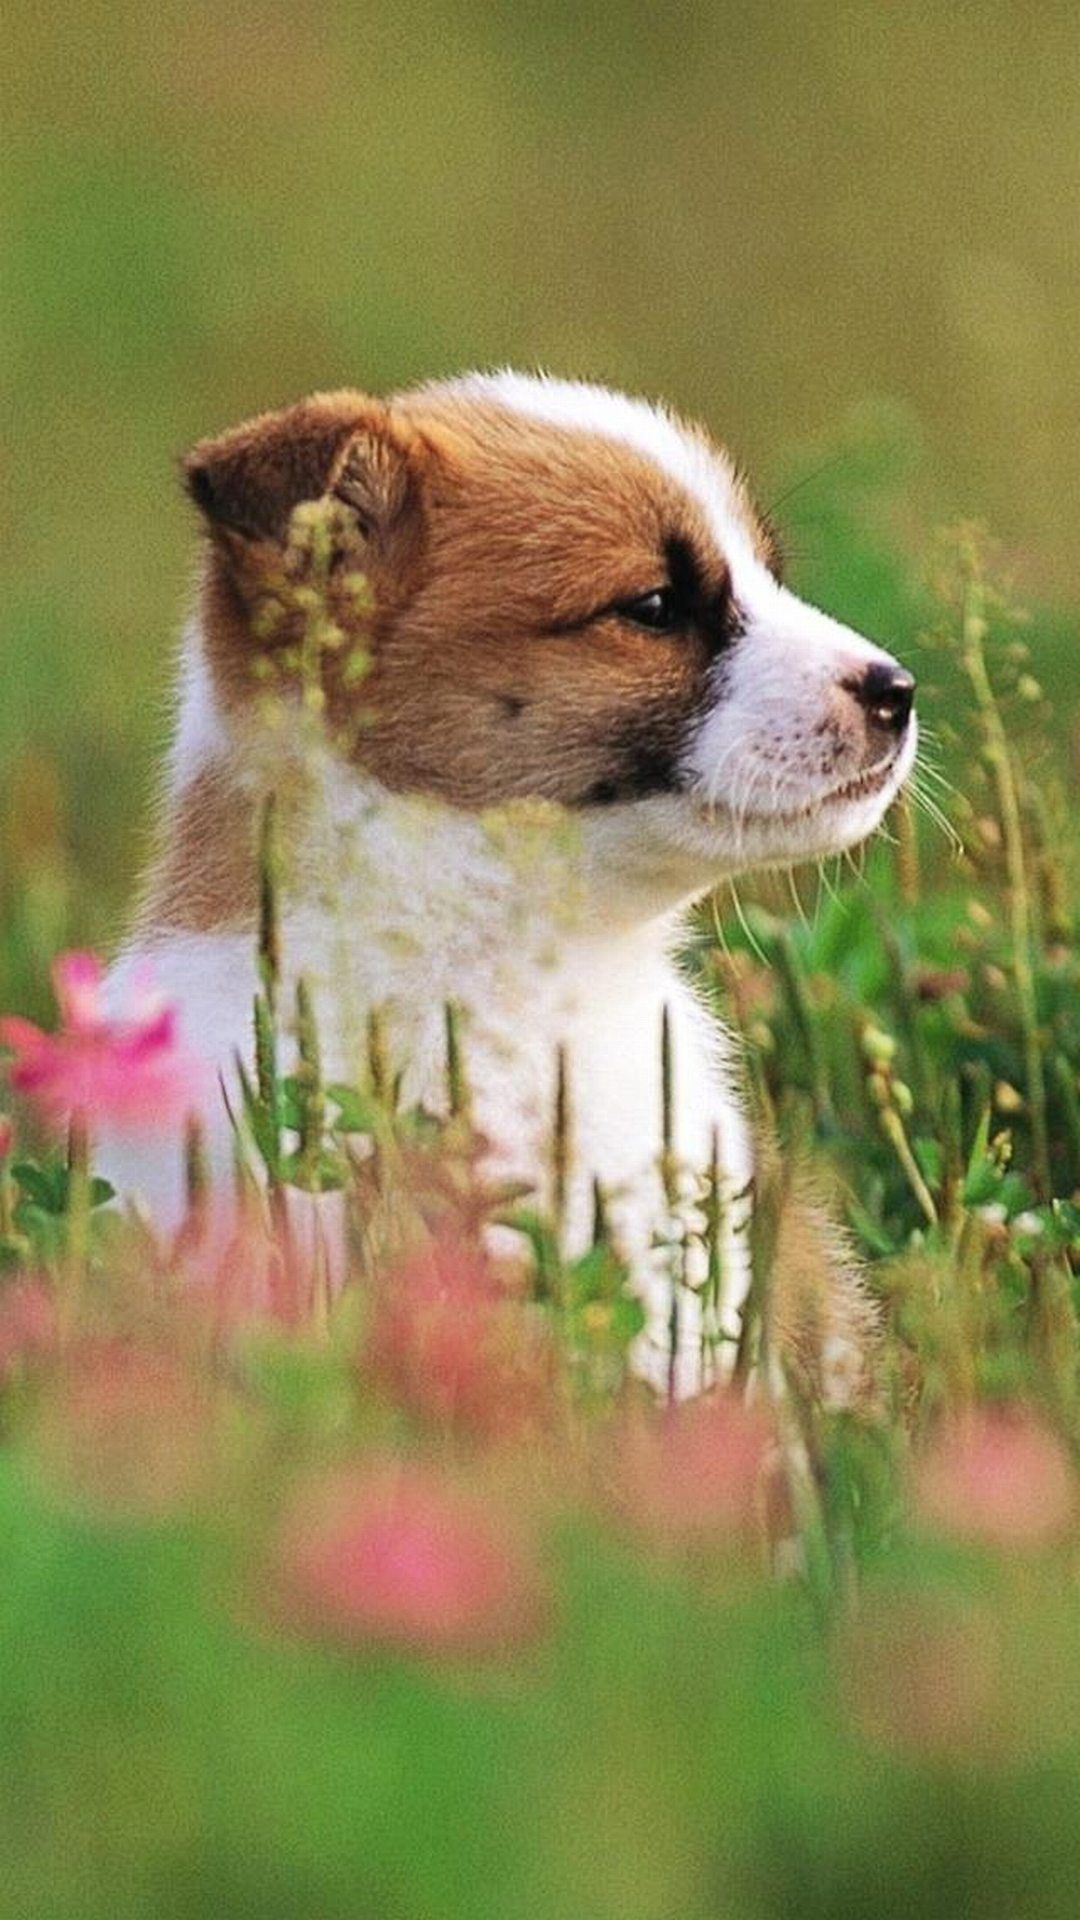 Puppy. Cute Puppies Wallpapers for iPhone. Animals Dog